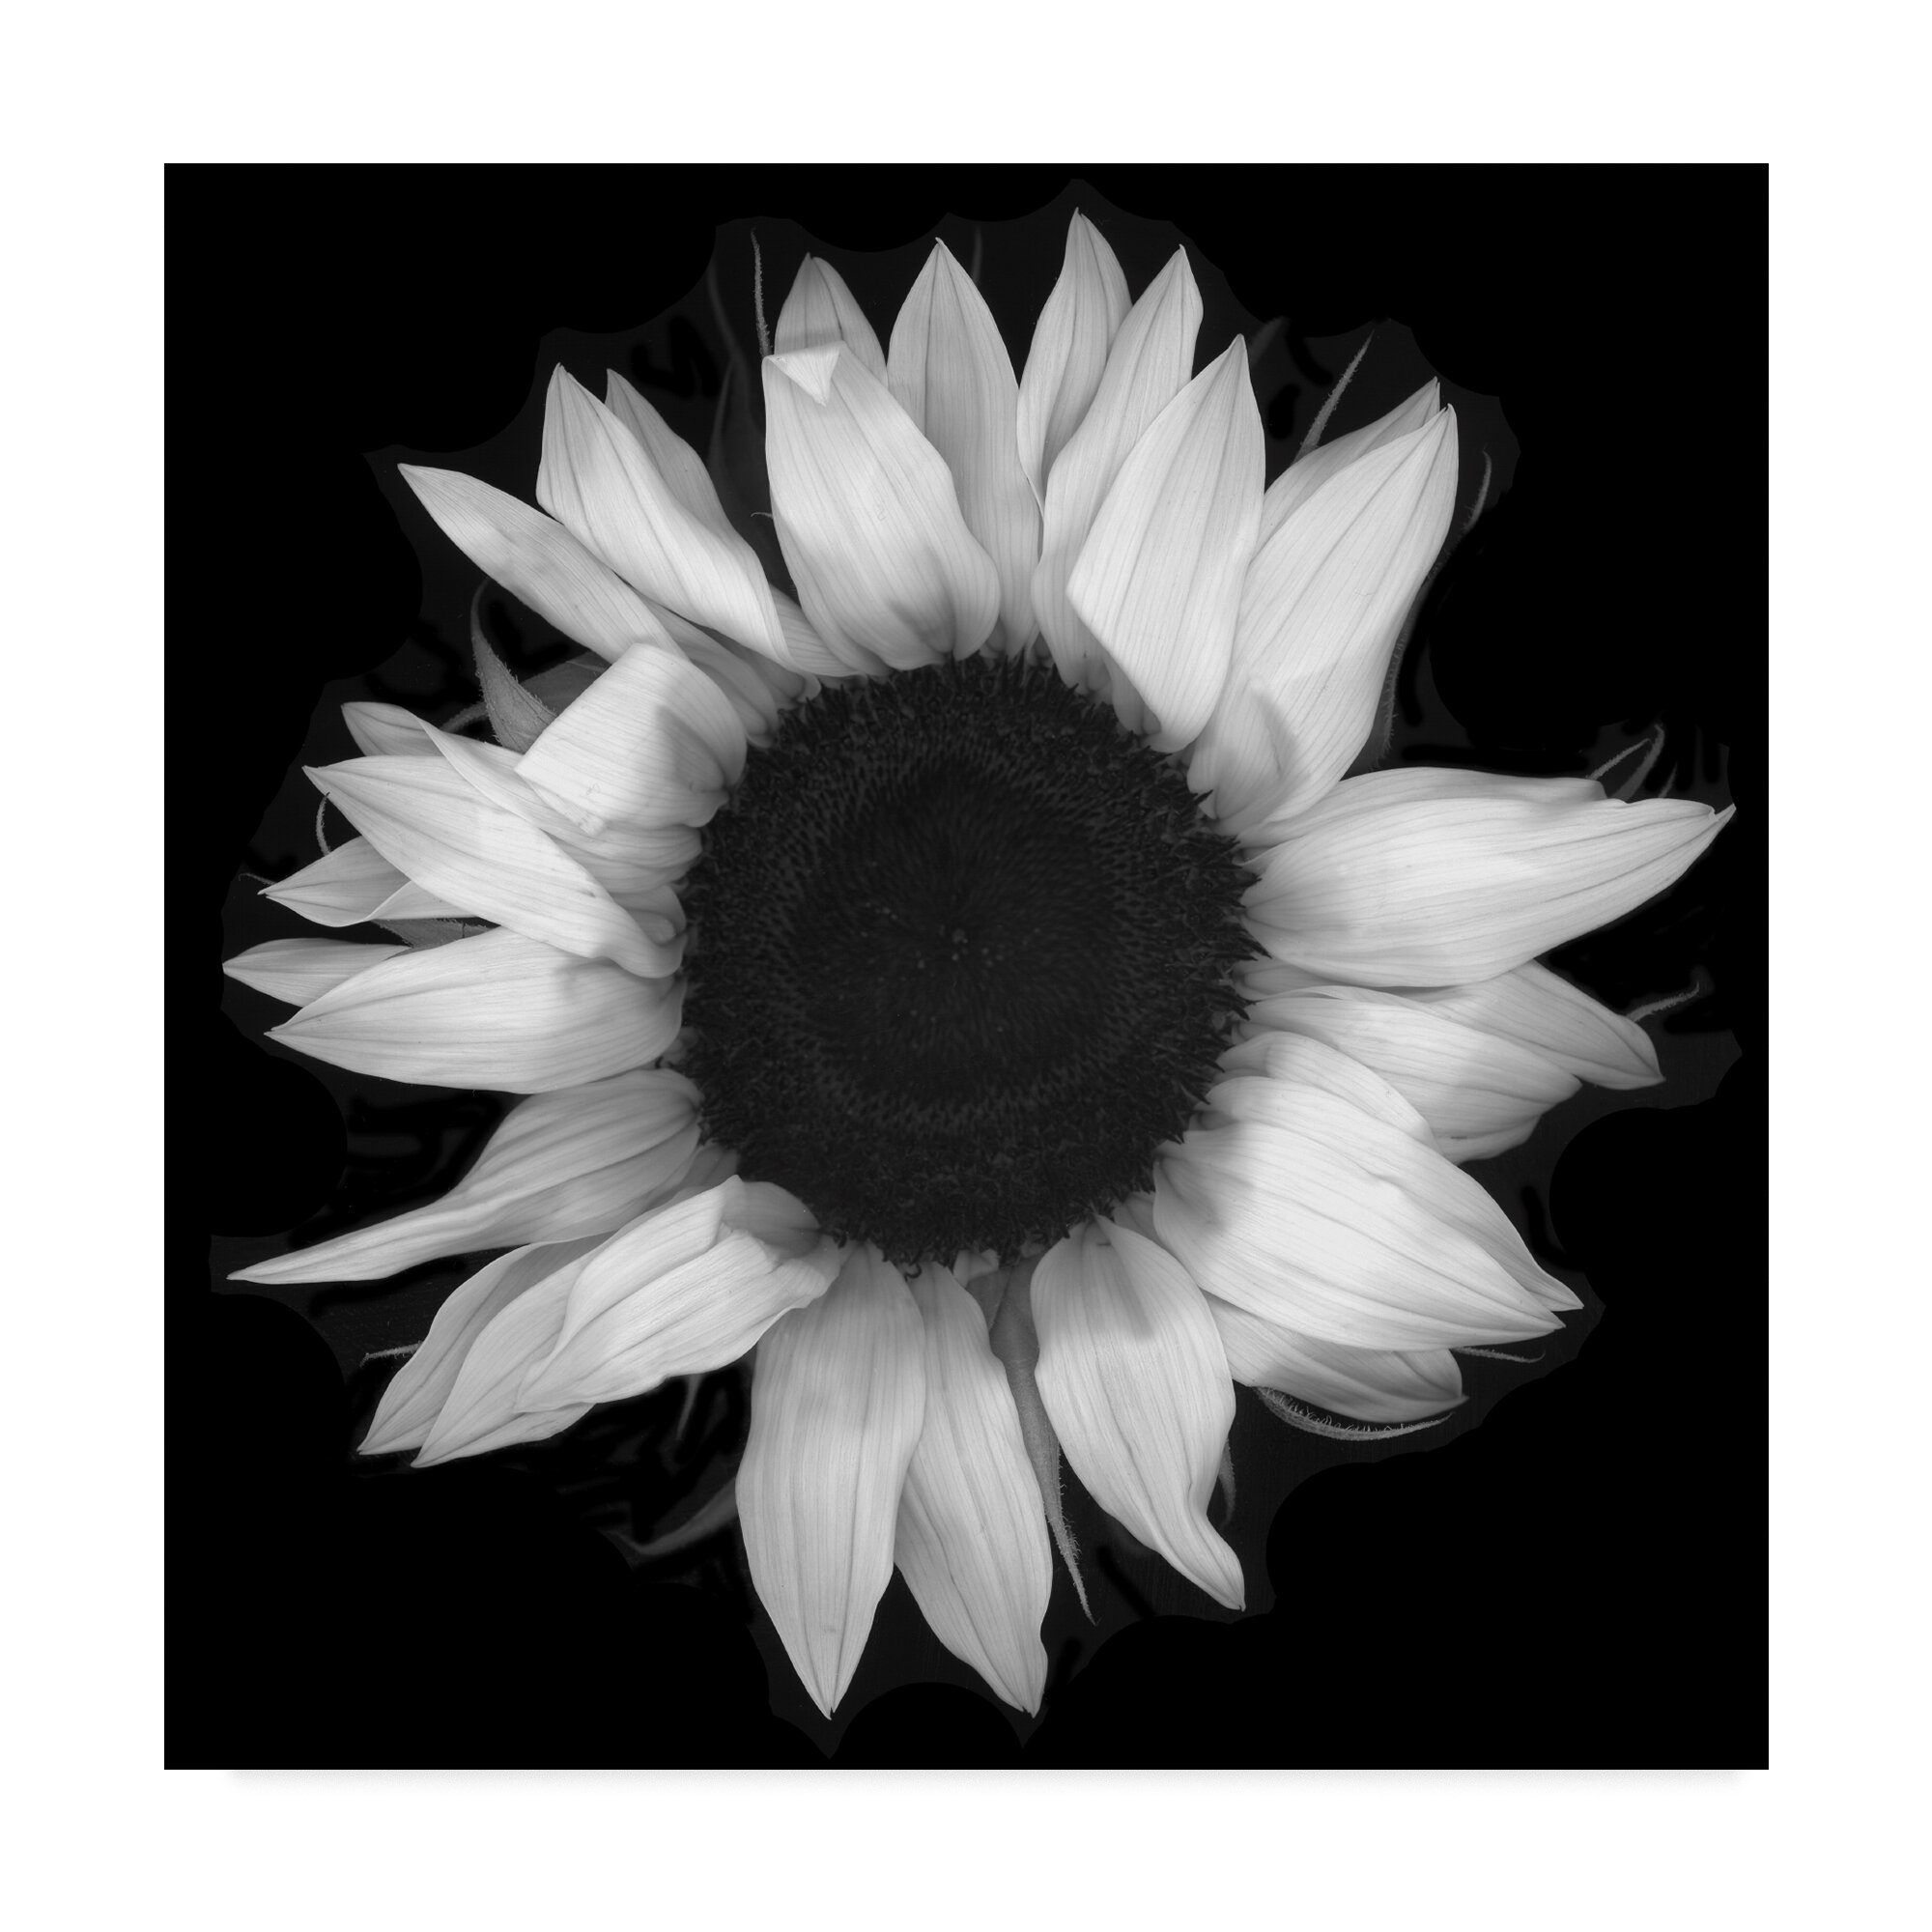 Sunflower 1 black and white graphic art print on wrapped canvas